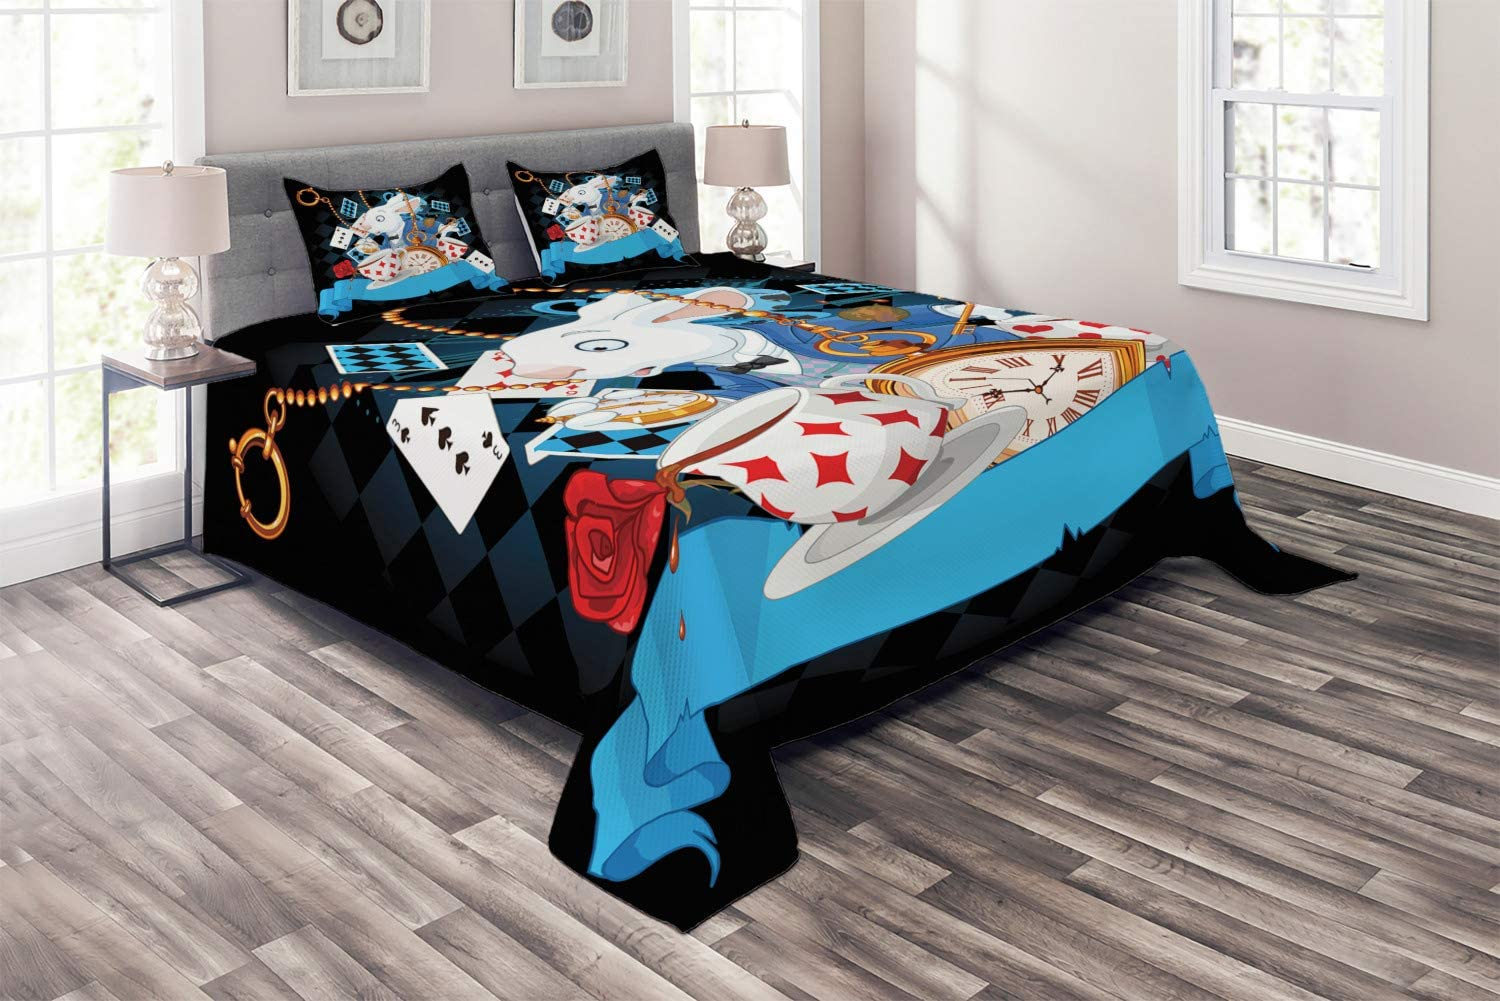 Ambesonne Alice in Wonderland Coverlet, Rabbit Motion Cups Hearts and Flower Character Alice Cartoon Style, 3 Piece Decorative Quilted Bedspread Set with 2 Pillow Shams, Queen Size, Black Blue